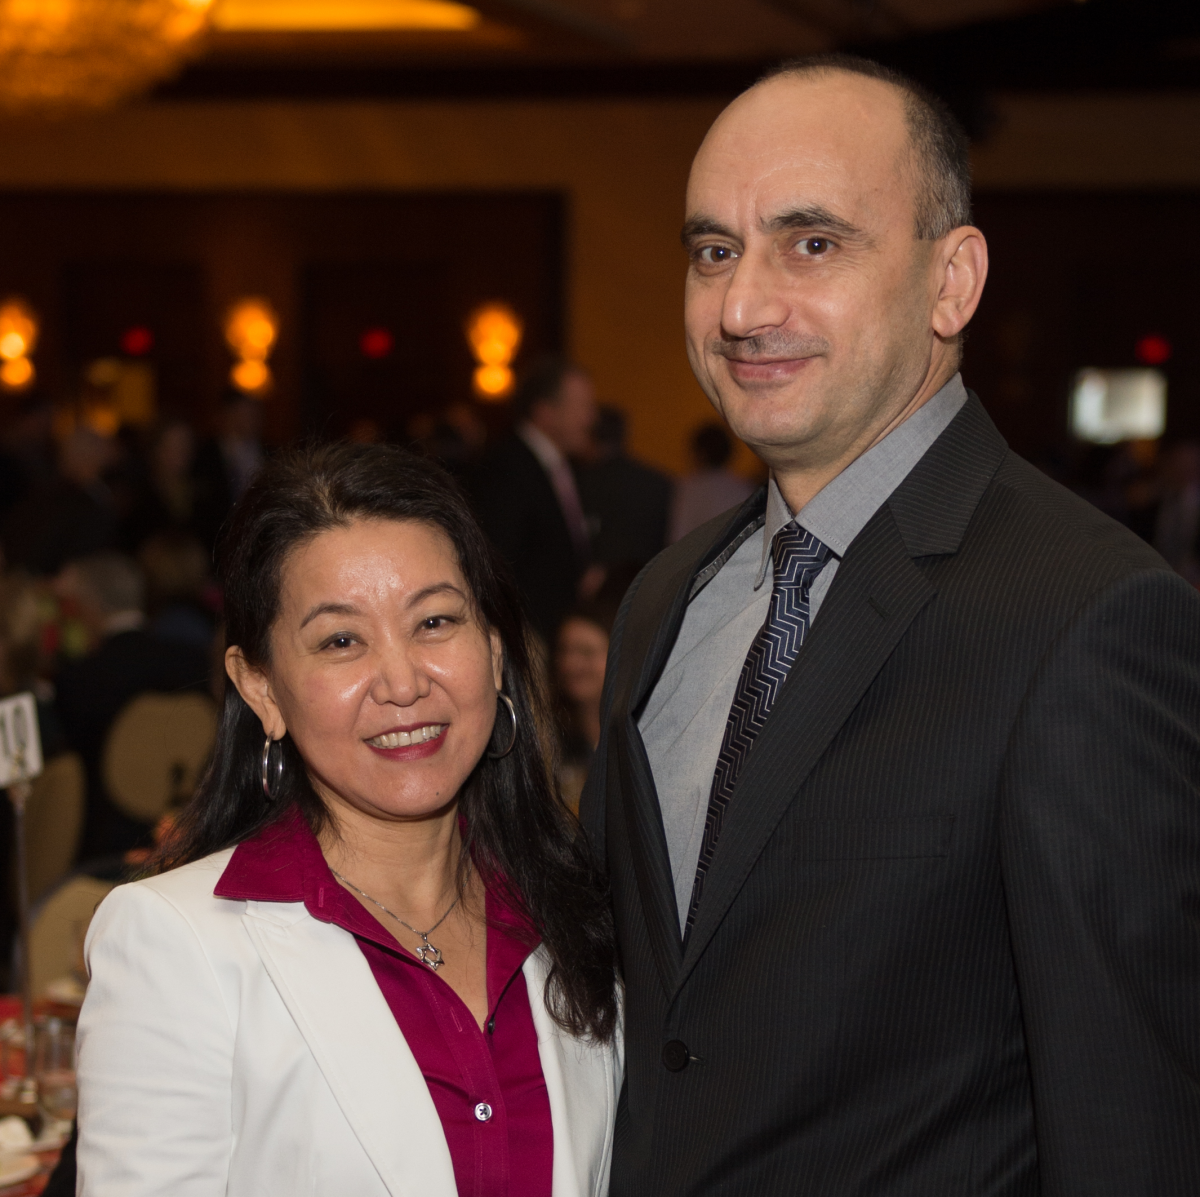 News, Shelby, Holocaust museum luncheon, Nov. 2015, Nancy Li, Dr. Soner Tarim